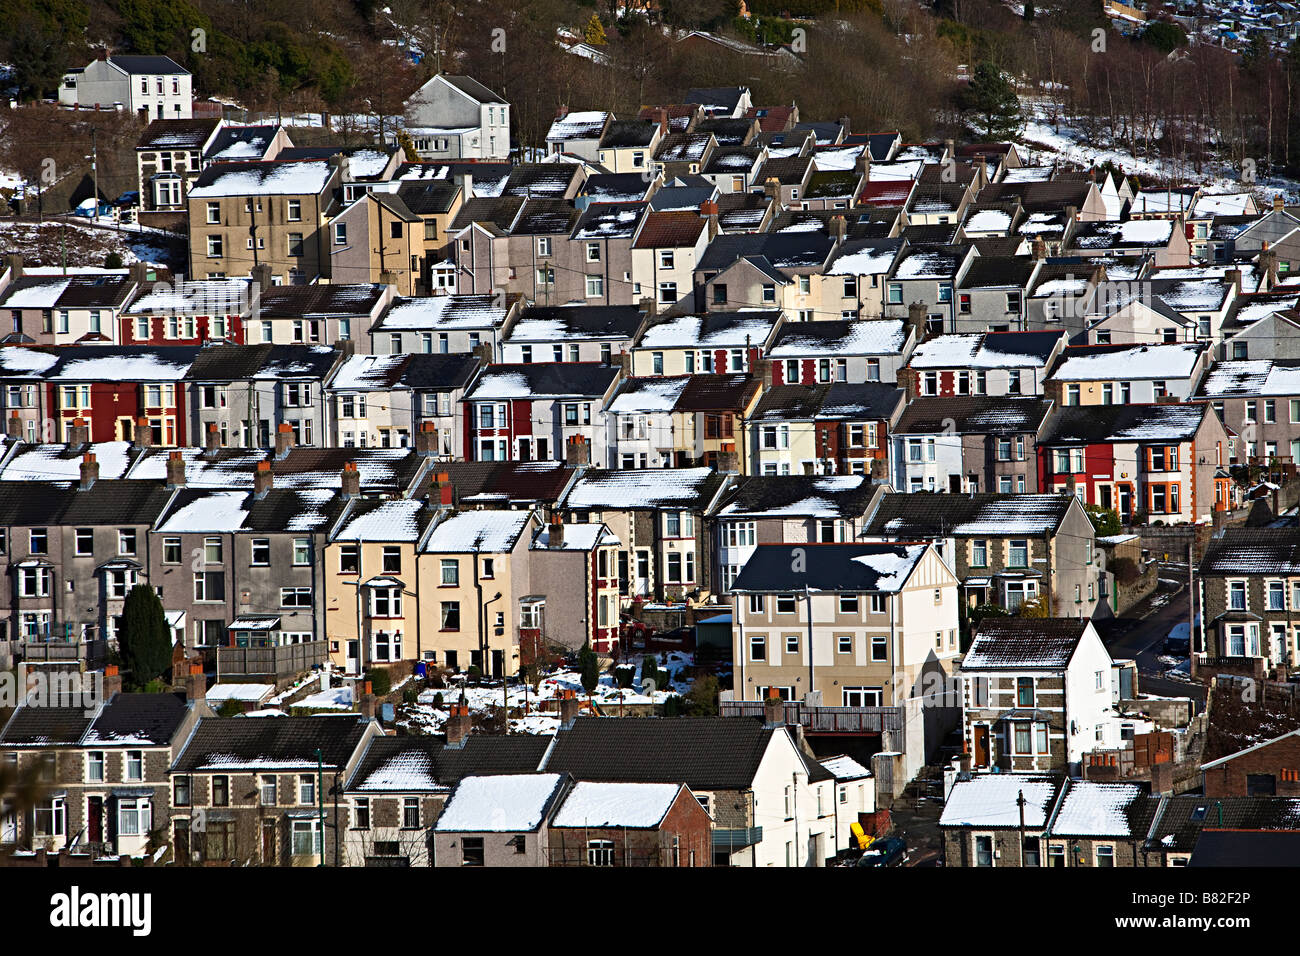 Town of Six Bells in the South Wales valleys in winter with snow on rooftops Wales UK - Stock Image